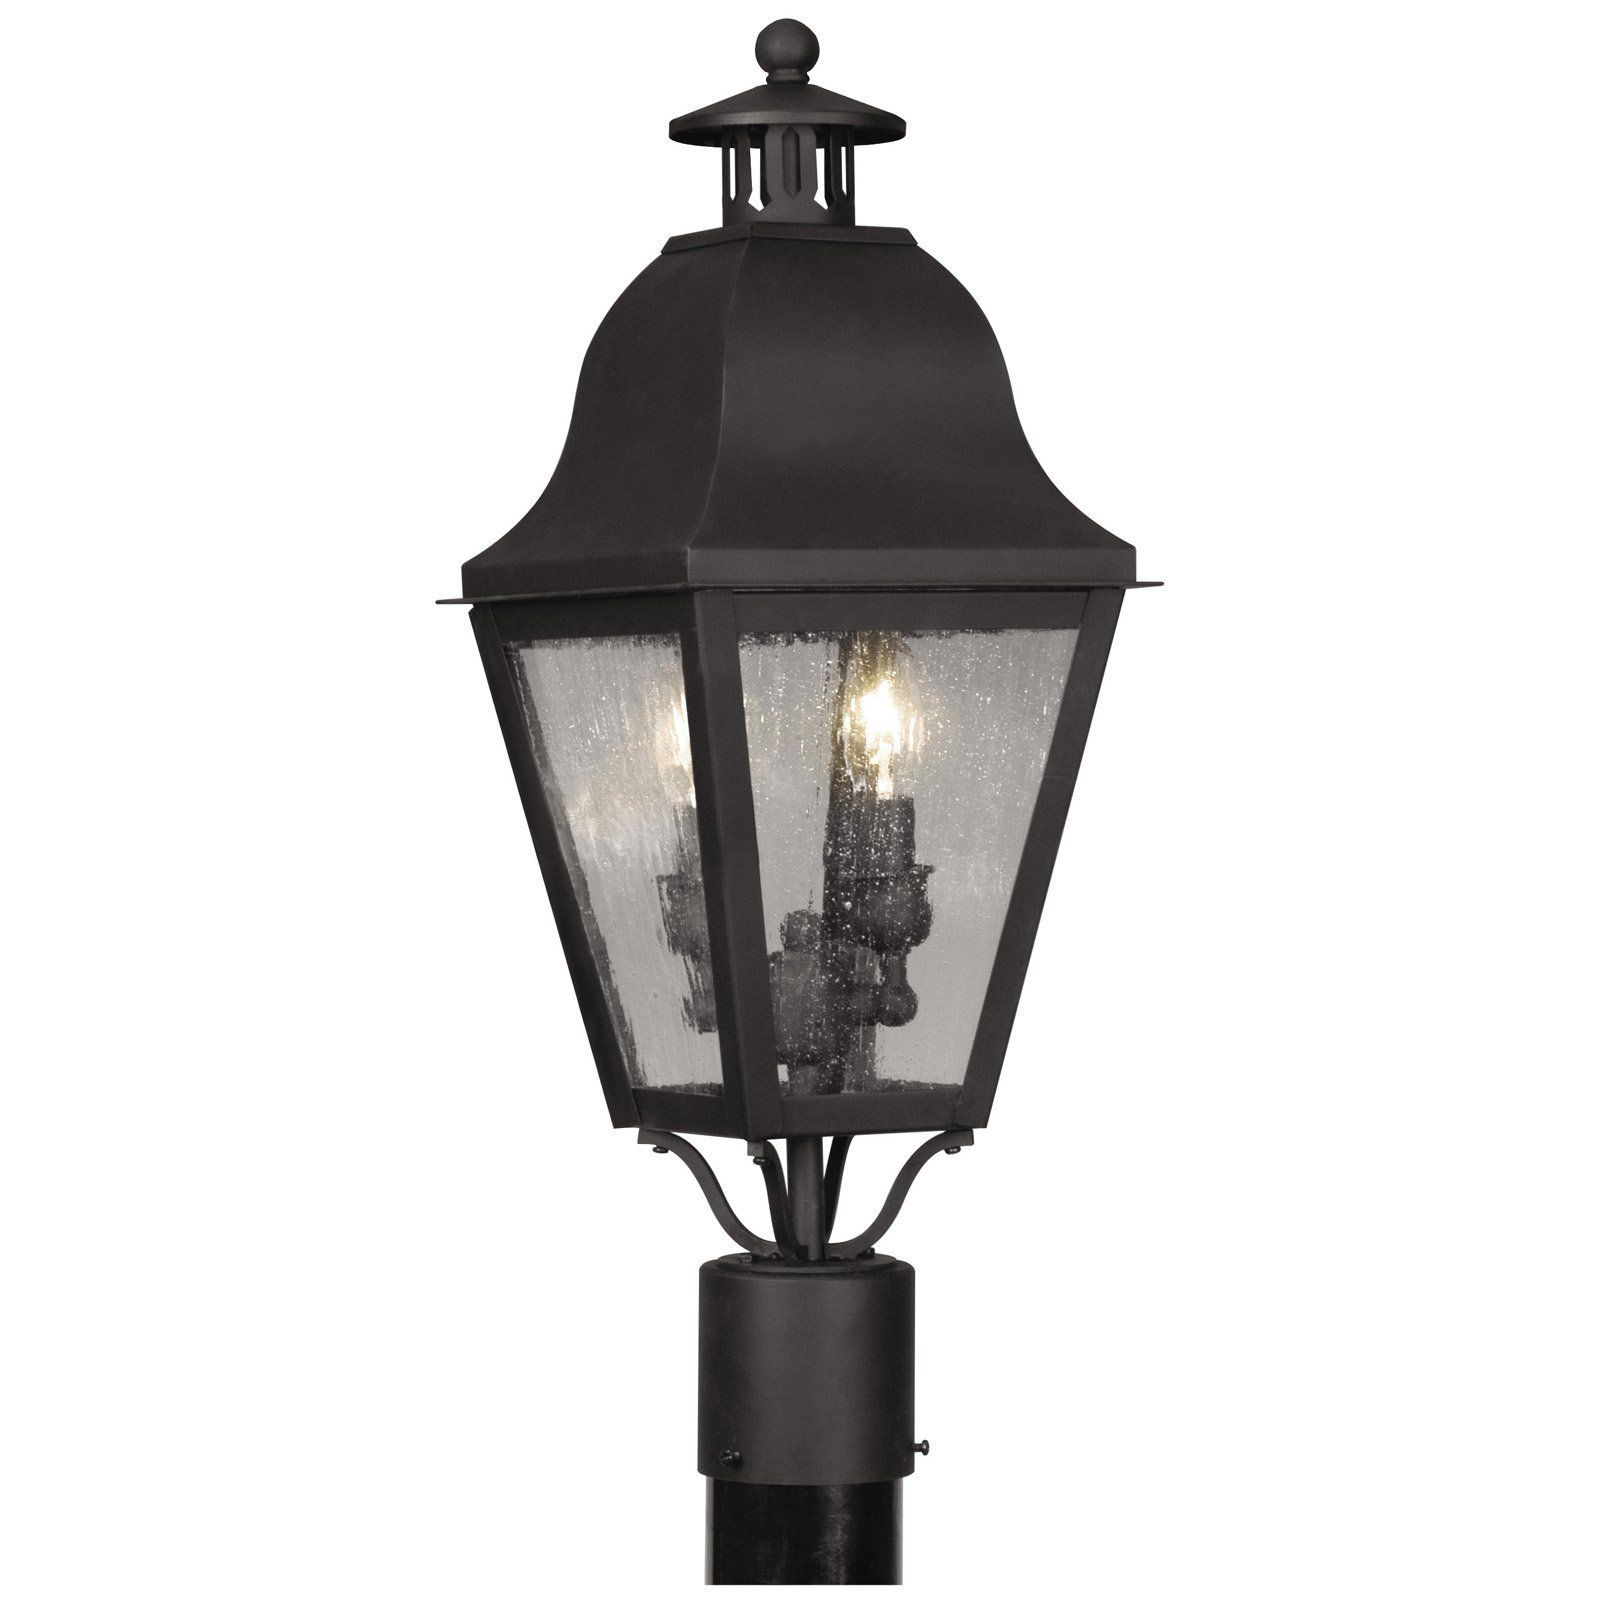 Livex Amwell 2552-04 Outdoor Post Lantern - 23H in. Black - 2552-04